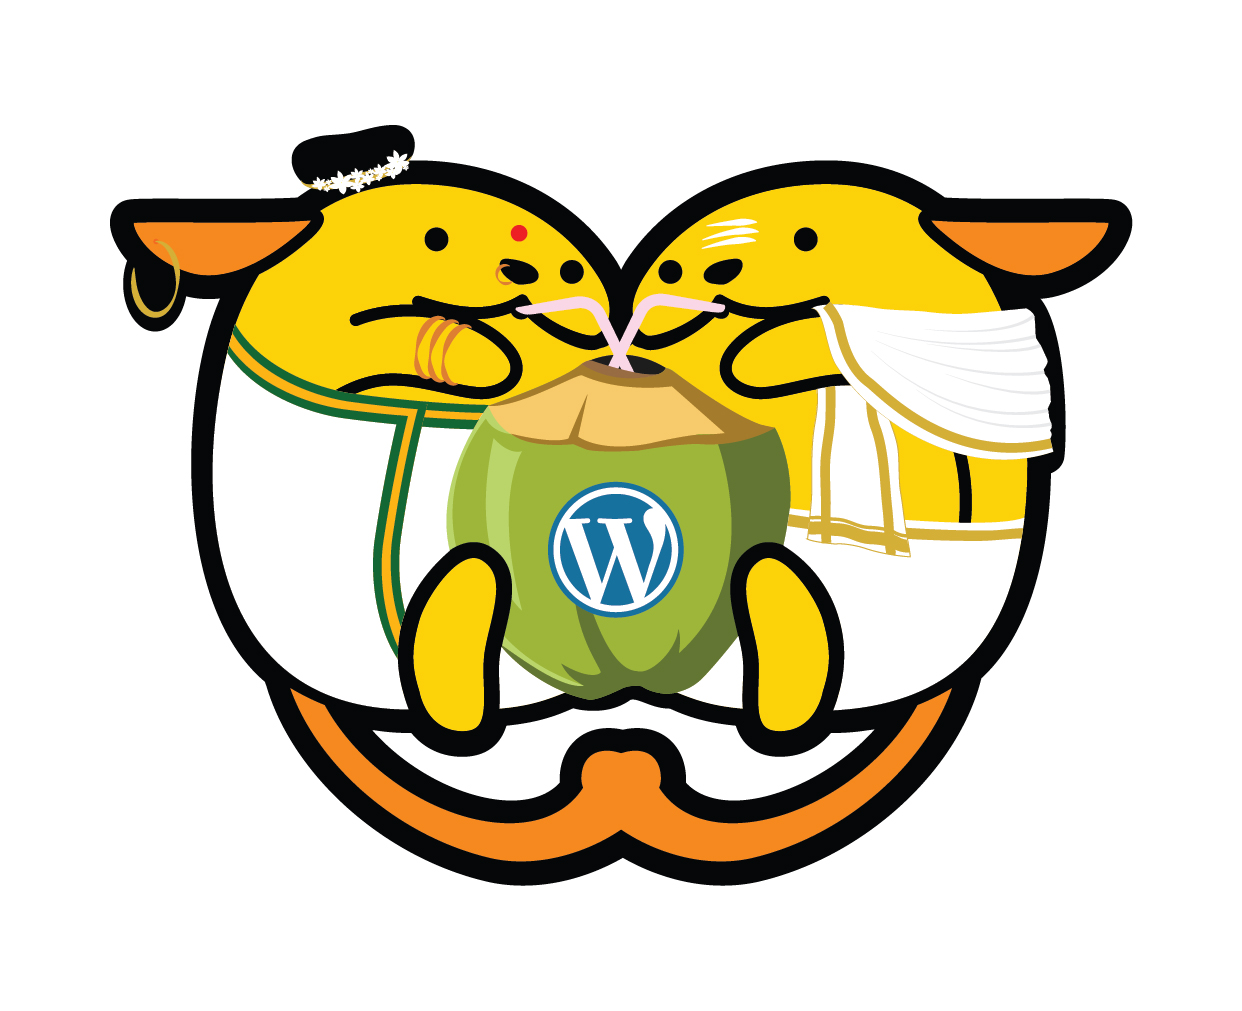 Official Wapuu for WordCamp Kochi - Ammu & Appu.